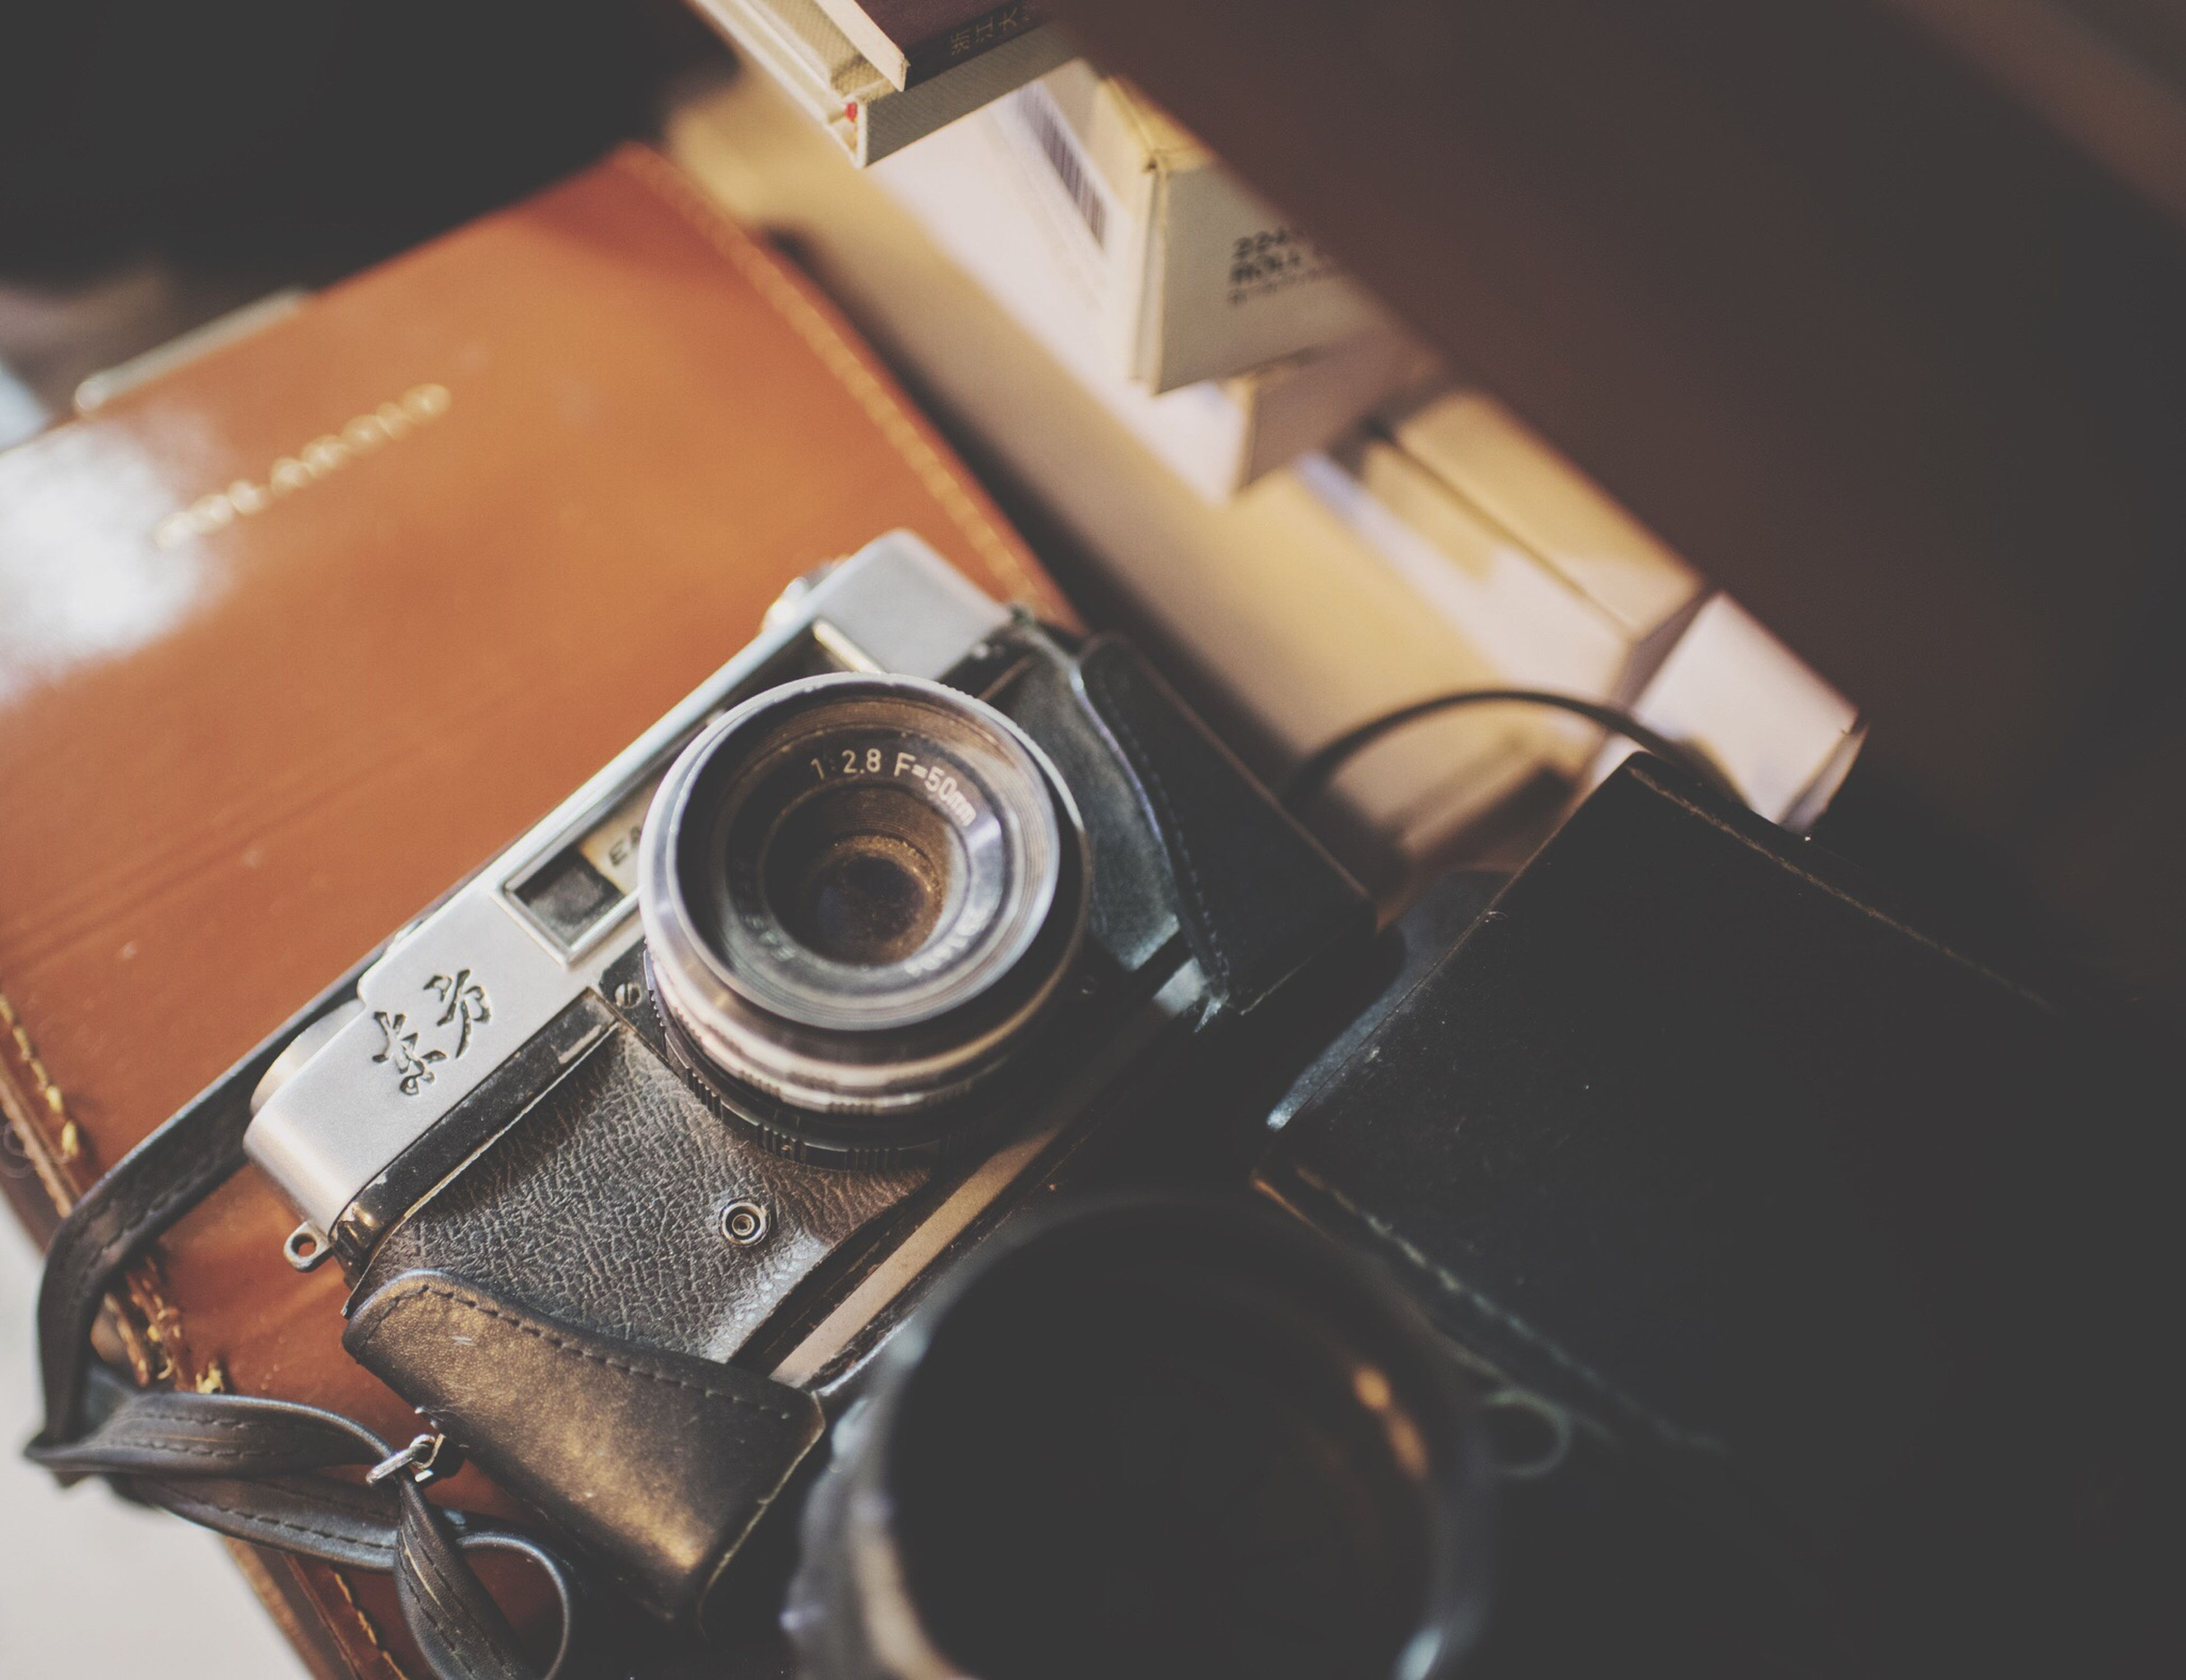 indoors, close-up, technology, metal, old-fashioned, retro styled, photography themes, focus on foreground, music, selective focus, camera - photographic equipment, still life, equipment, no people, connection, part of, arts culture and entertainment, old, high angle view, machine part